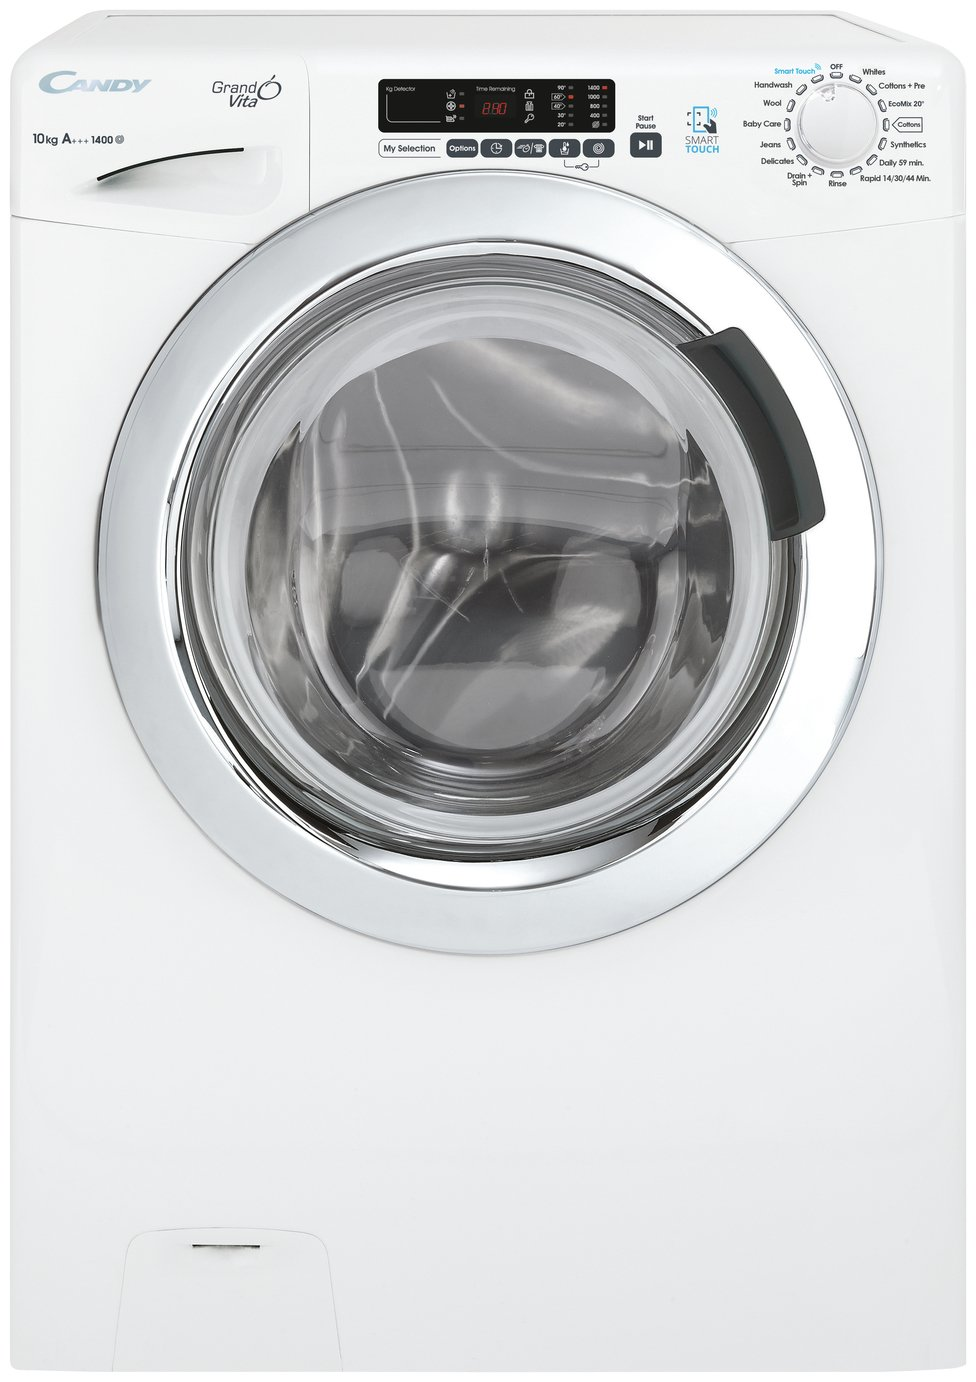 Image of Candy - GVS1410DC3 10KG 1400 Spin - Washing Machine - White